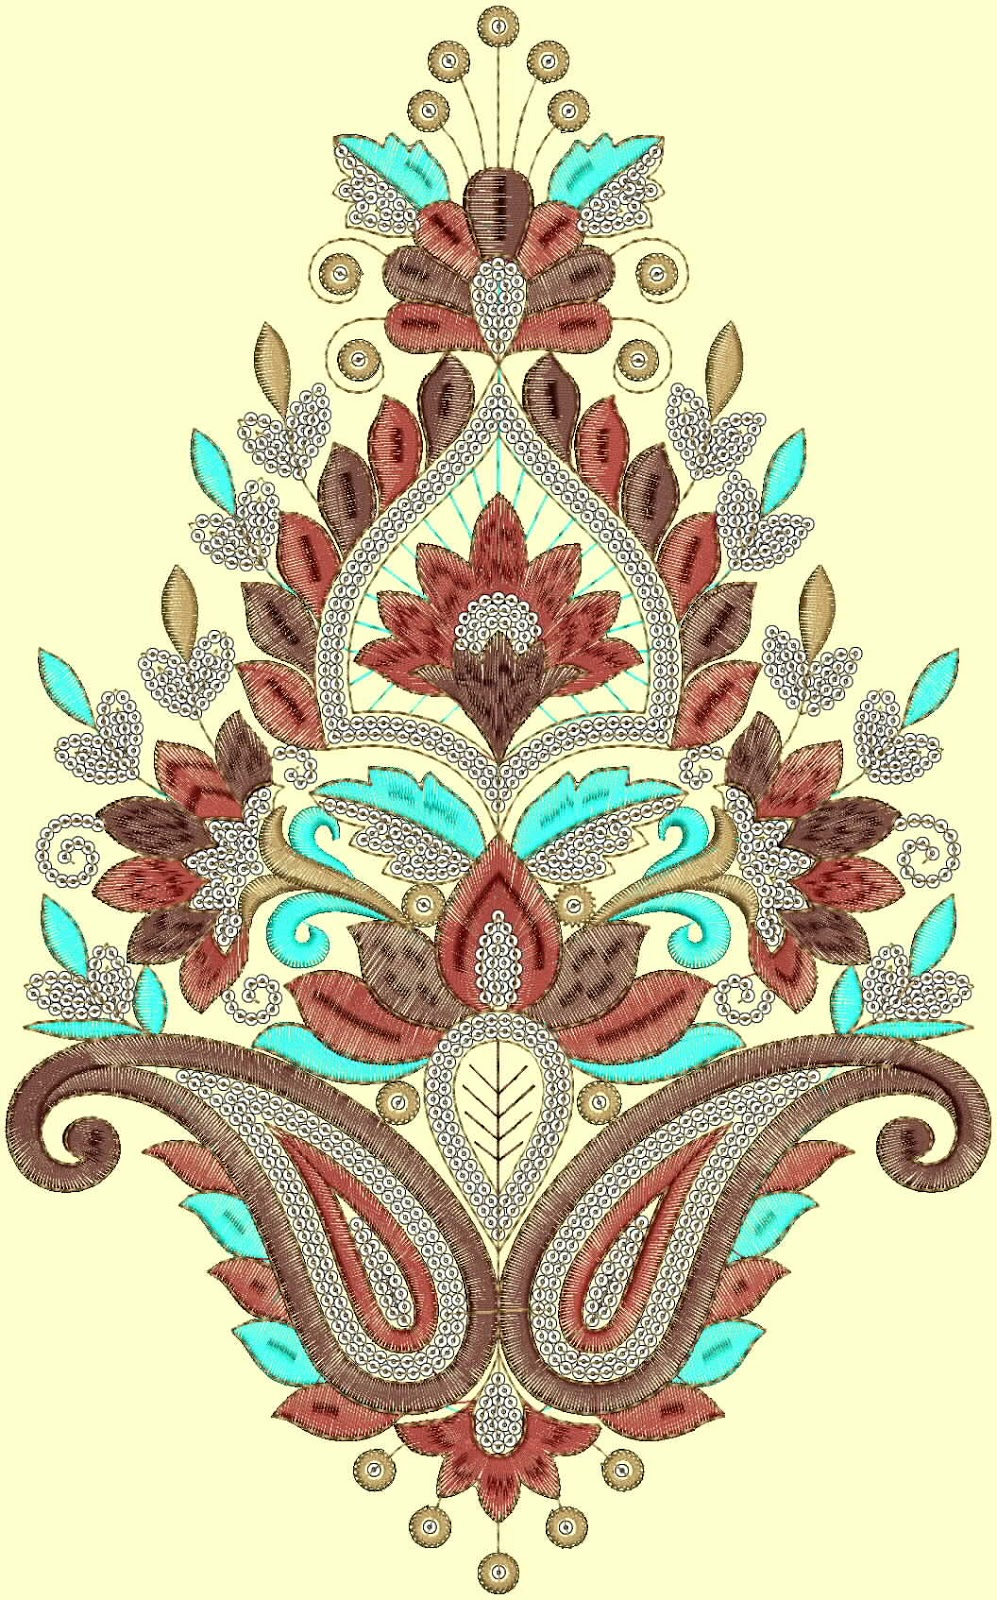 Velvet embroidery designs makaroka